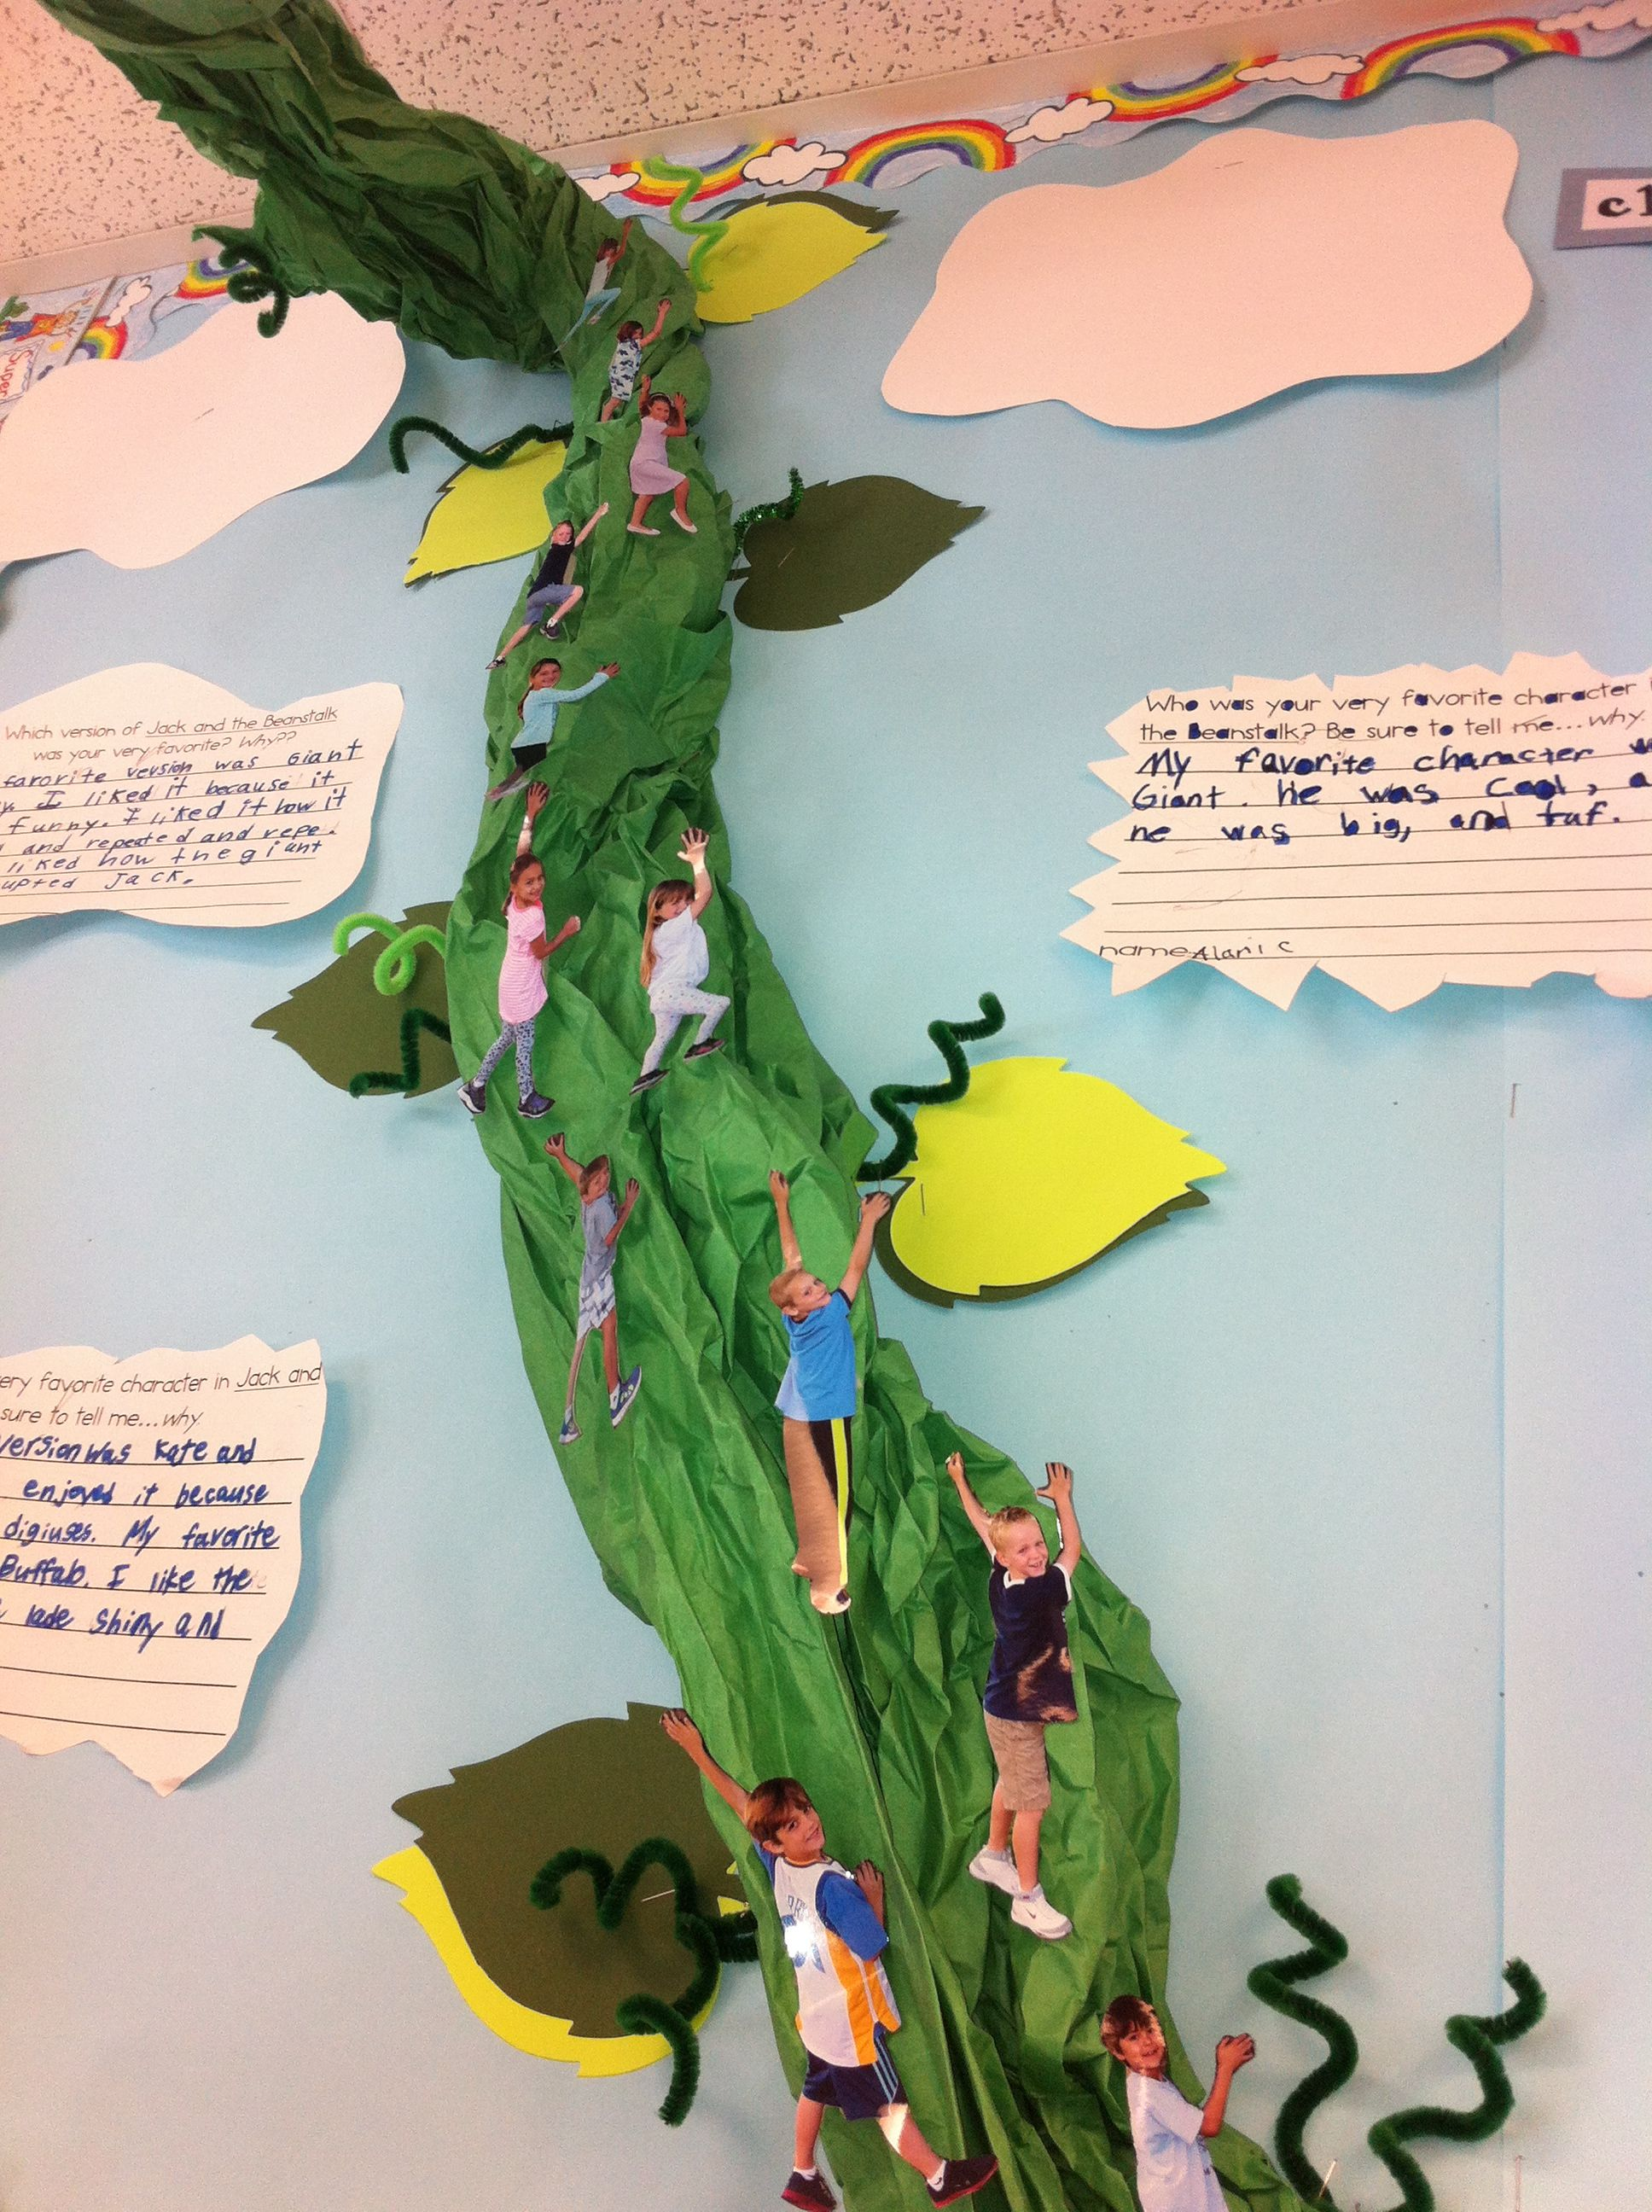 Pics Of Kids Climbing Up Beanstalk Ybe A Jack And The